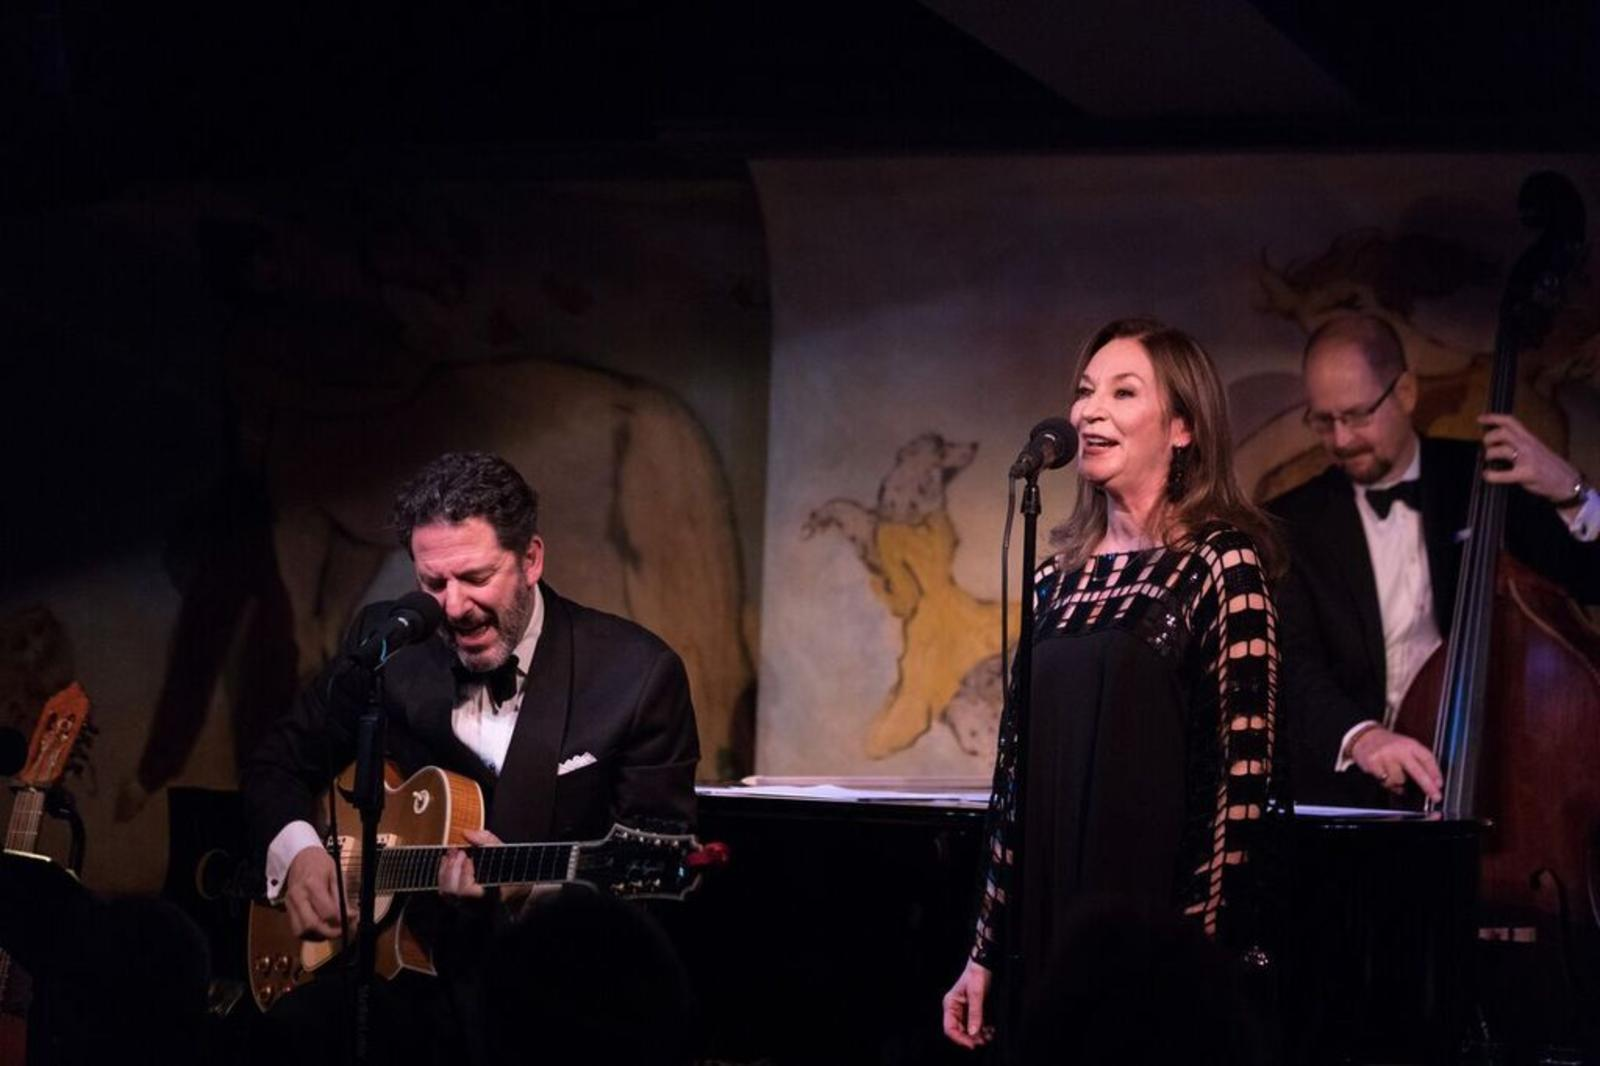 John Pizzarelli & Jessica Molaskey  - The Little Things You Do Together